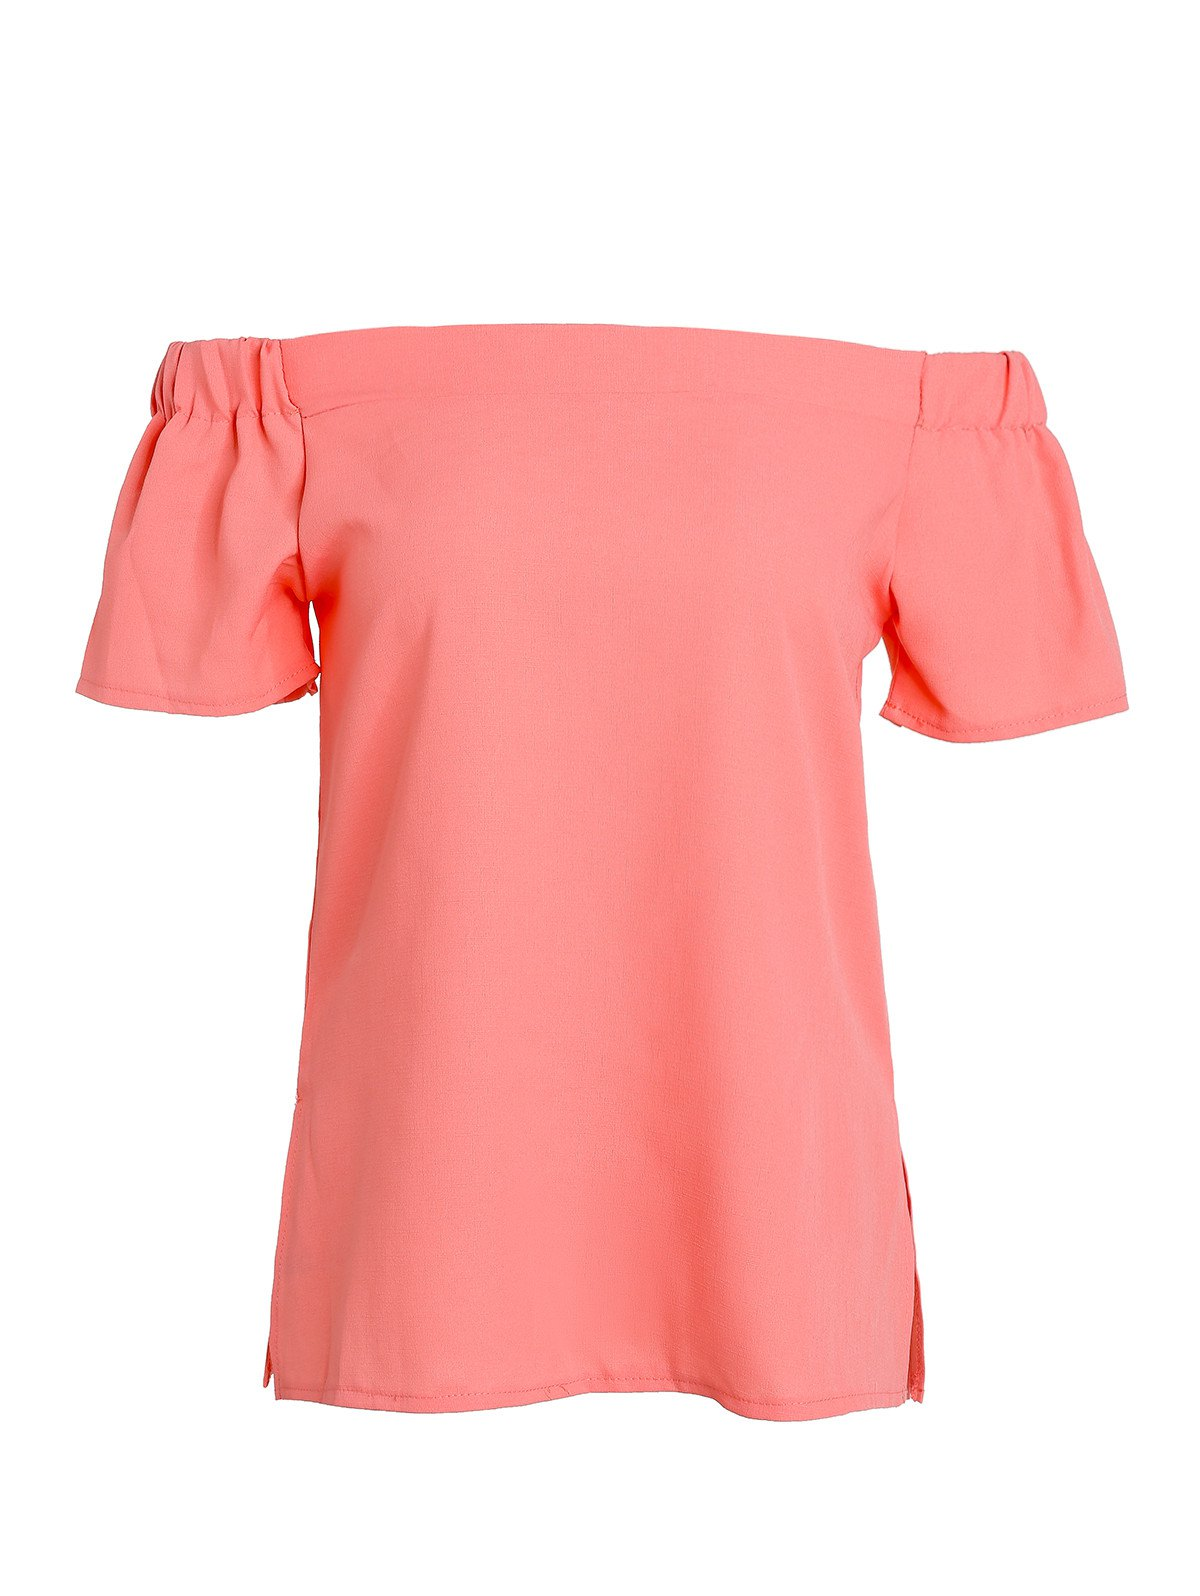 Fashionable Off The Shoulder Short Sleeve Solid Color Blouse For Women